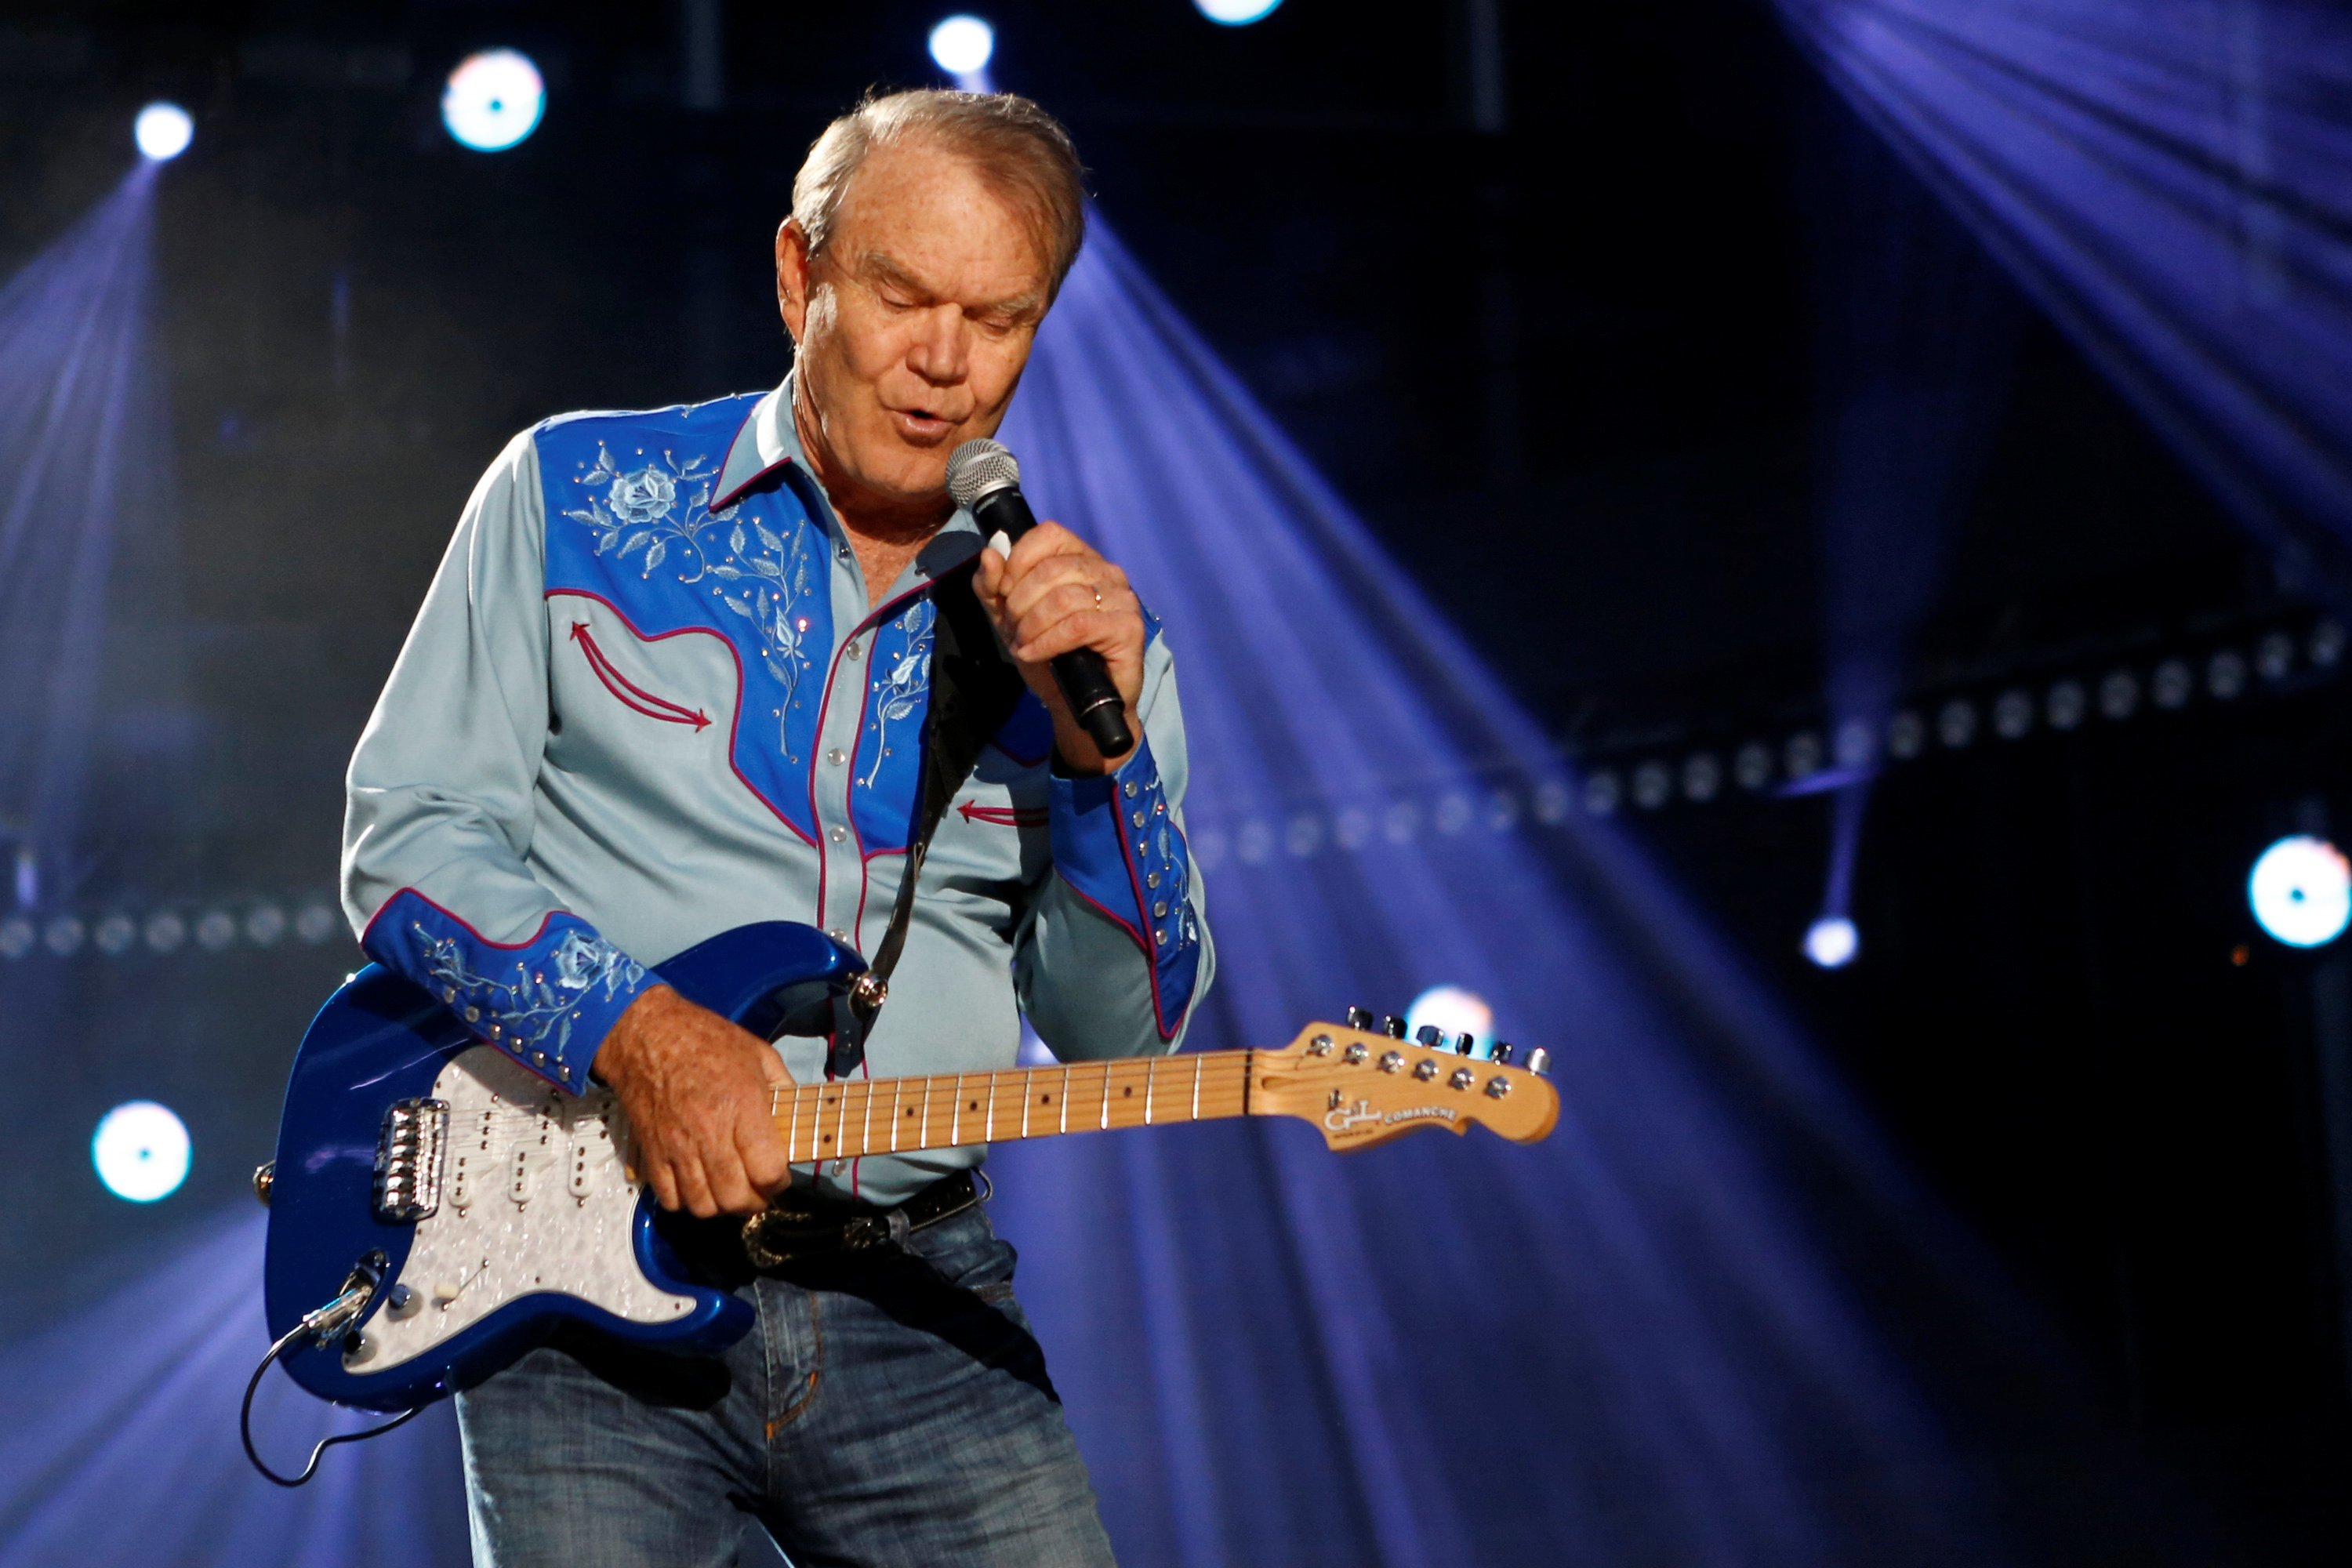 FILE PHOTO: Glen Campbell performs during CMA Music Festival in Nashville